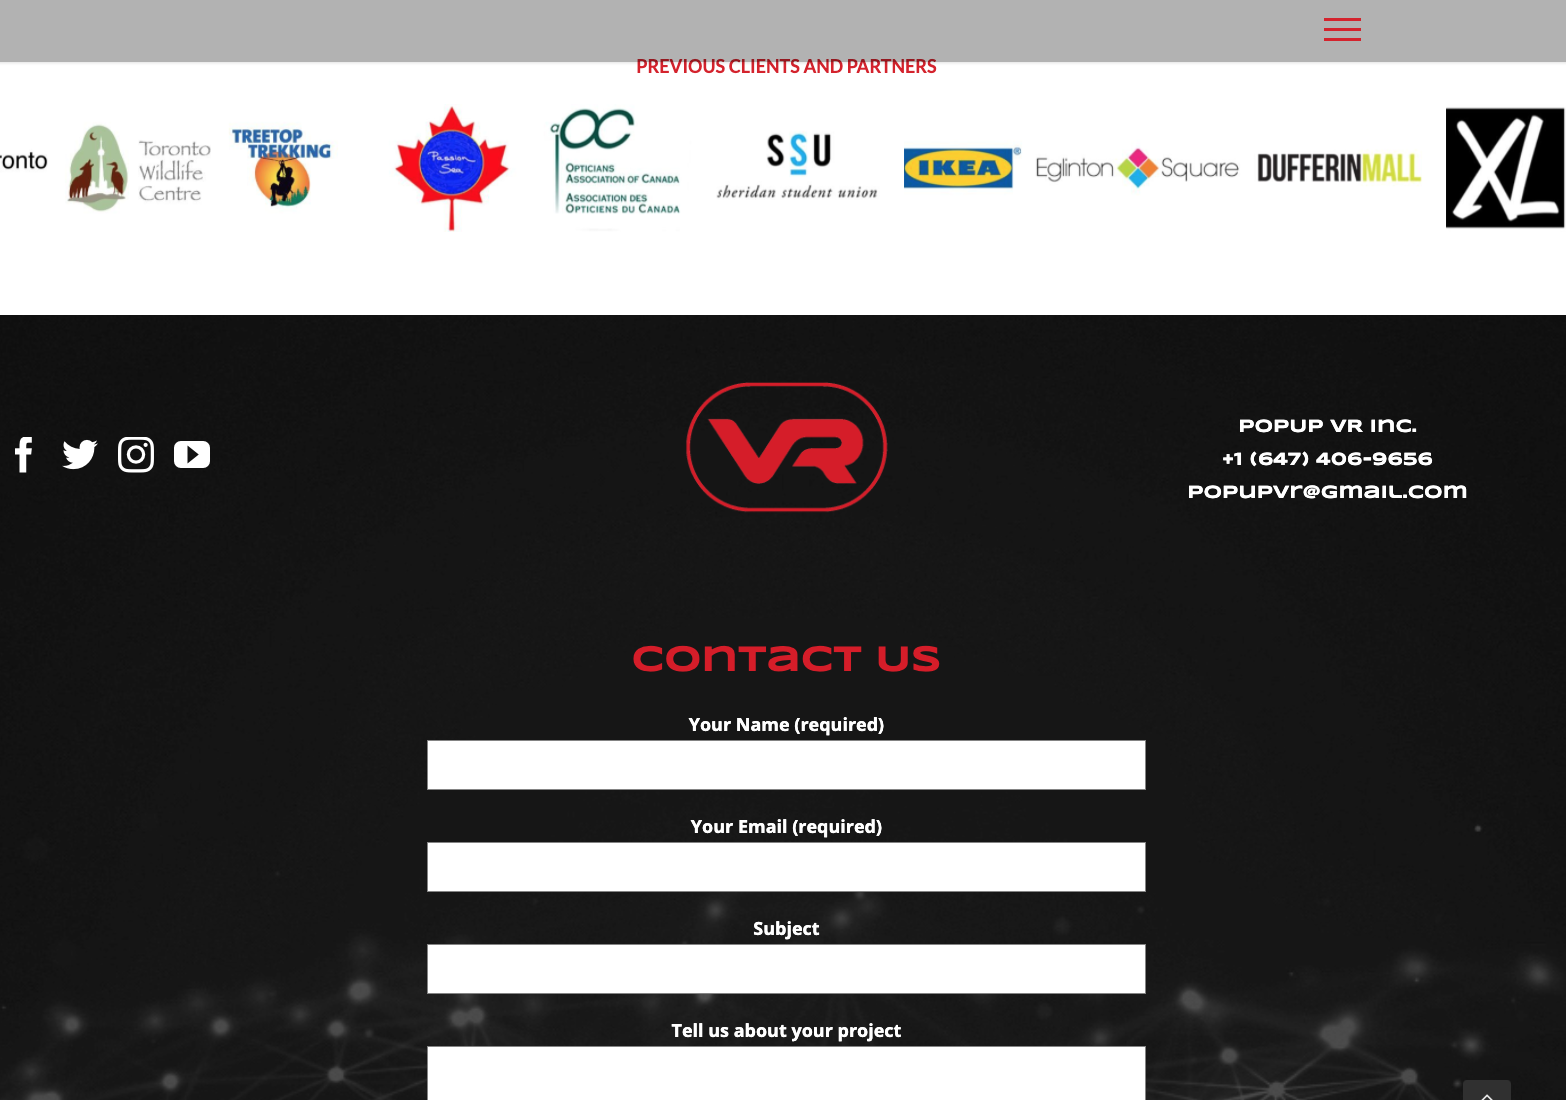 pop-up vr contact us